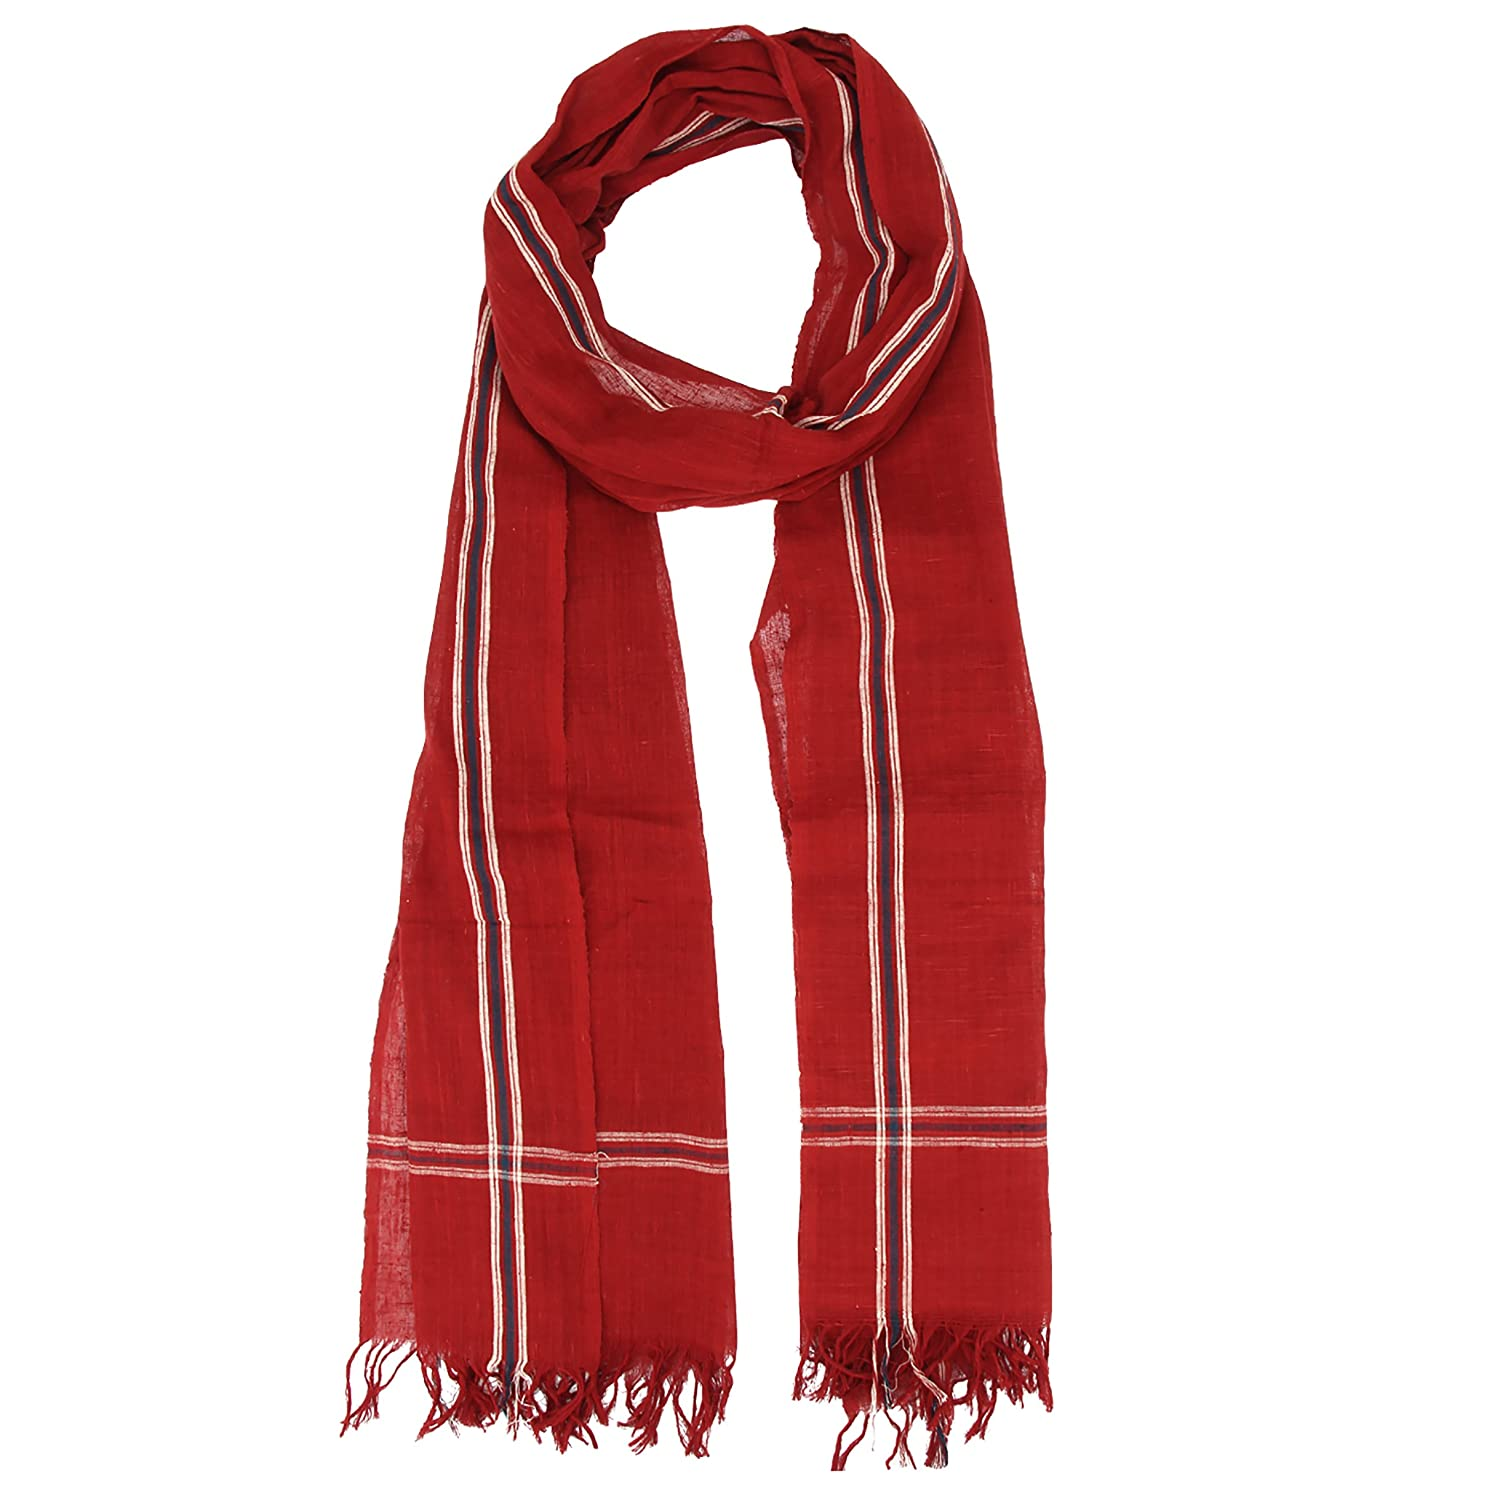 organic cotton hand made Indian Dupatta red stole